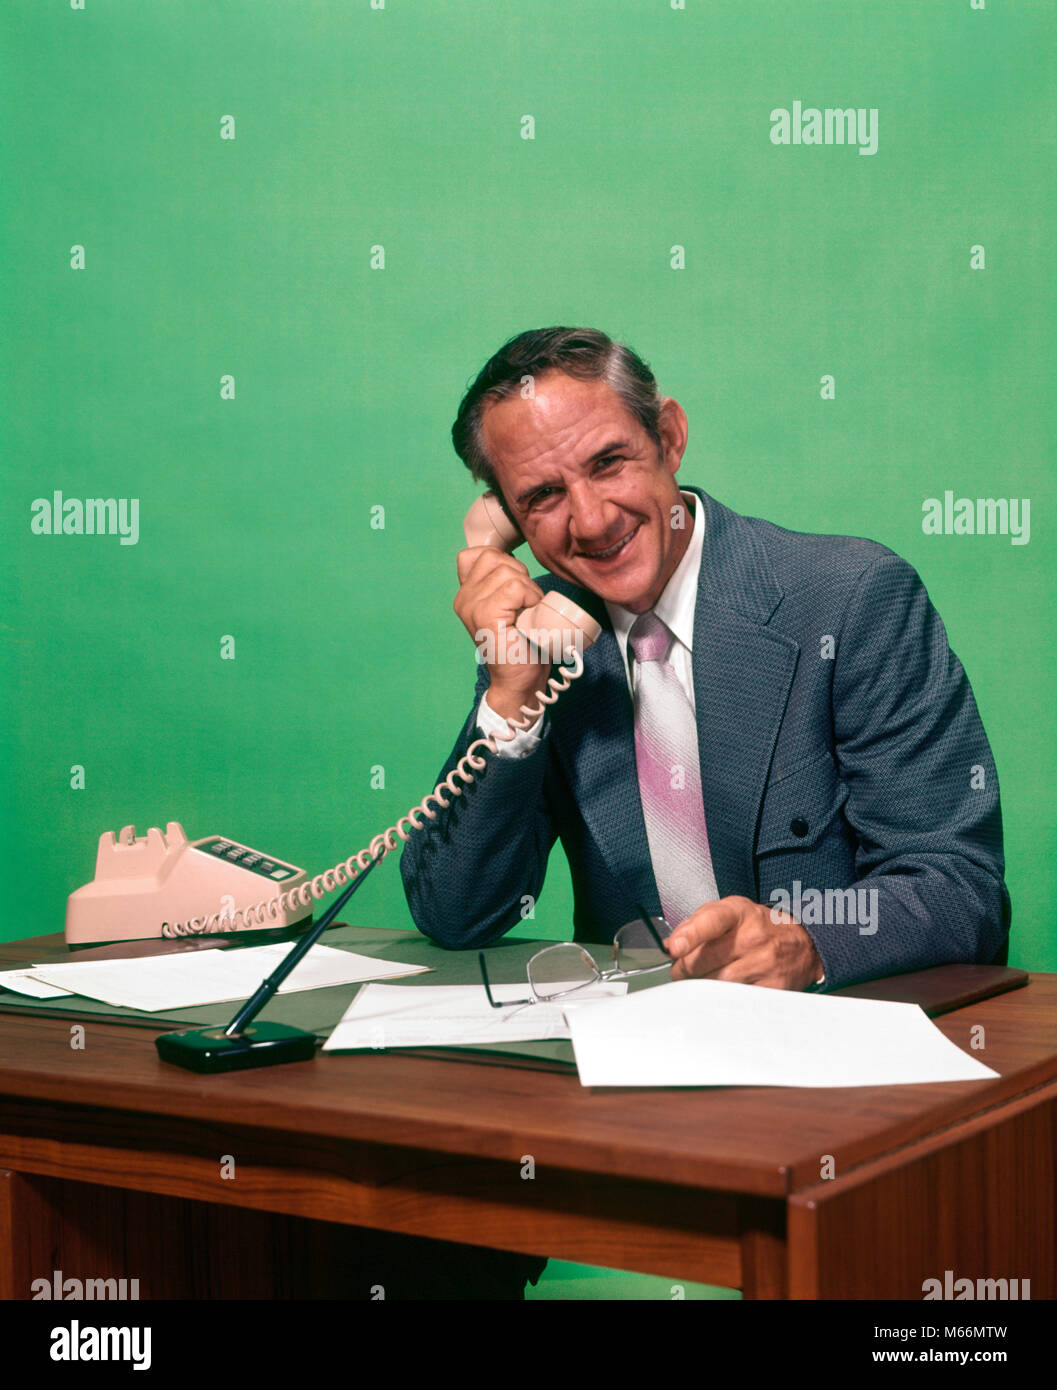 1970s SMILING MATURE MAN WEARING SUIT HOLDING GLASSES SITTING AT DESK SPEAKING ON TELEPHONE LOOKING AT CAMERA - - Stock Image